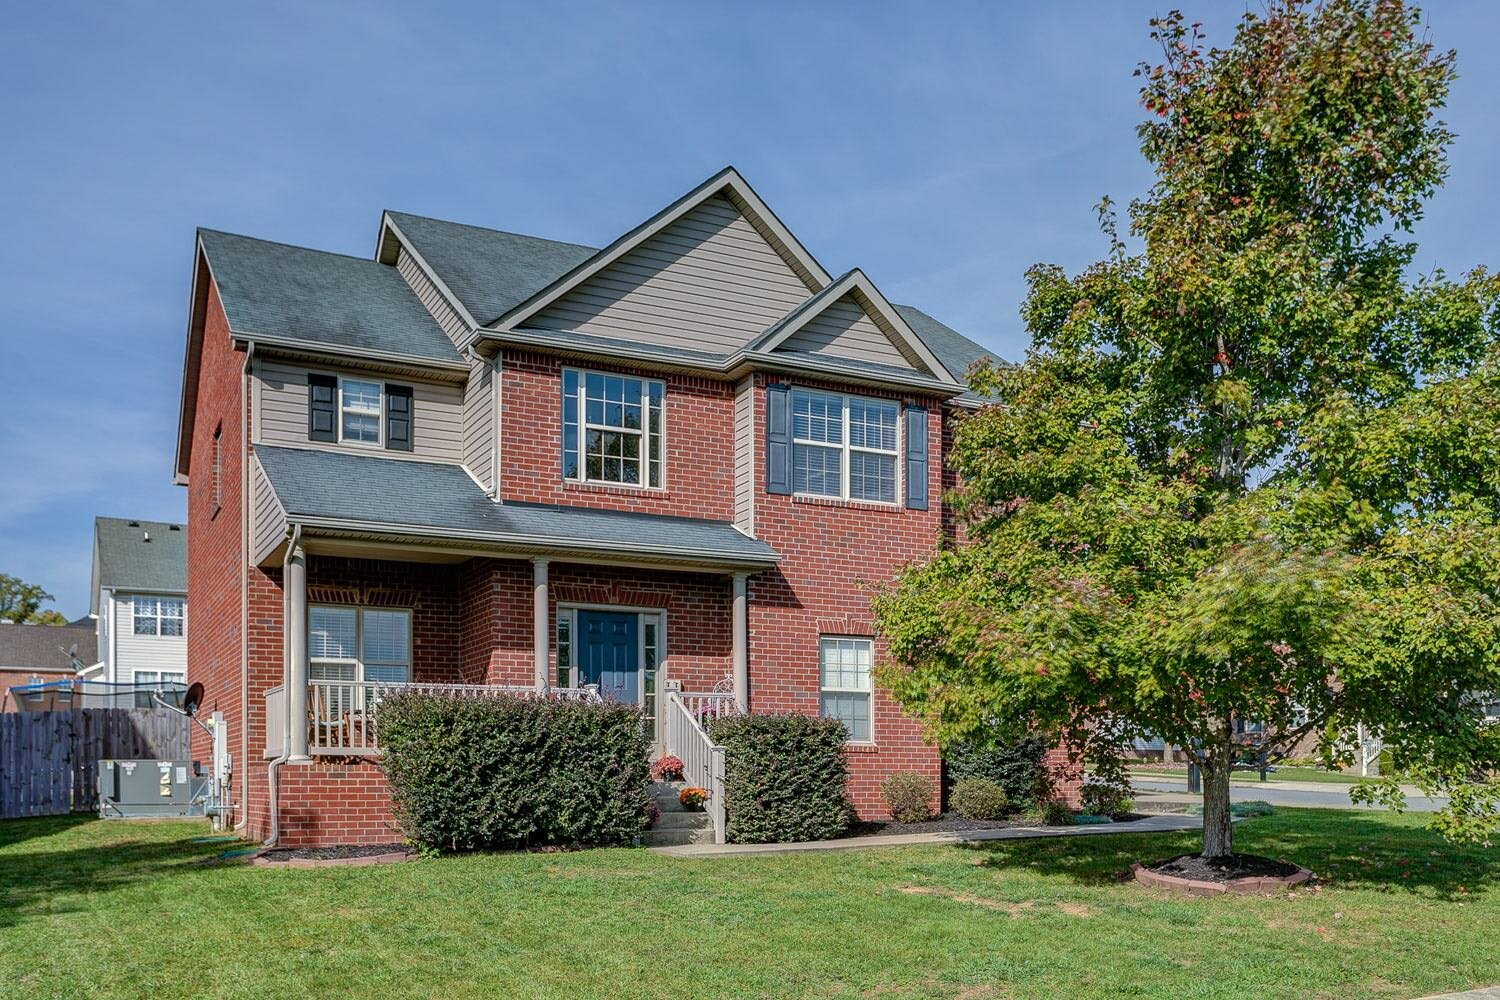 1296 Chapman's Retreat Dr - Spring Hill (SOLD)